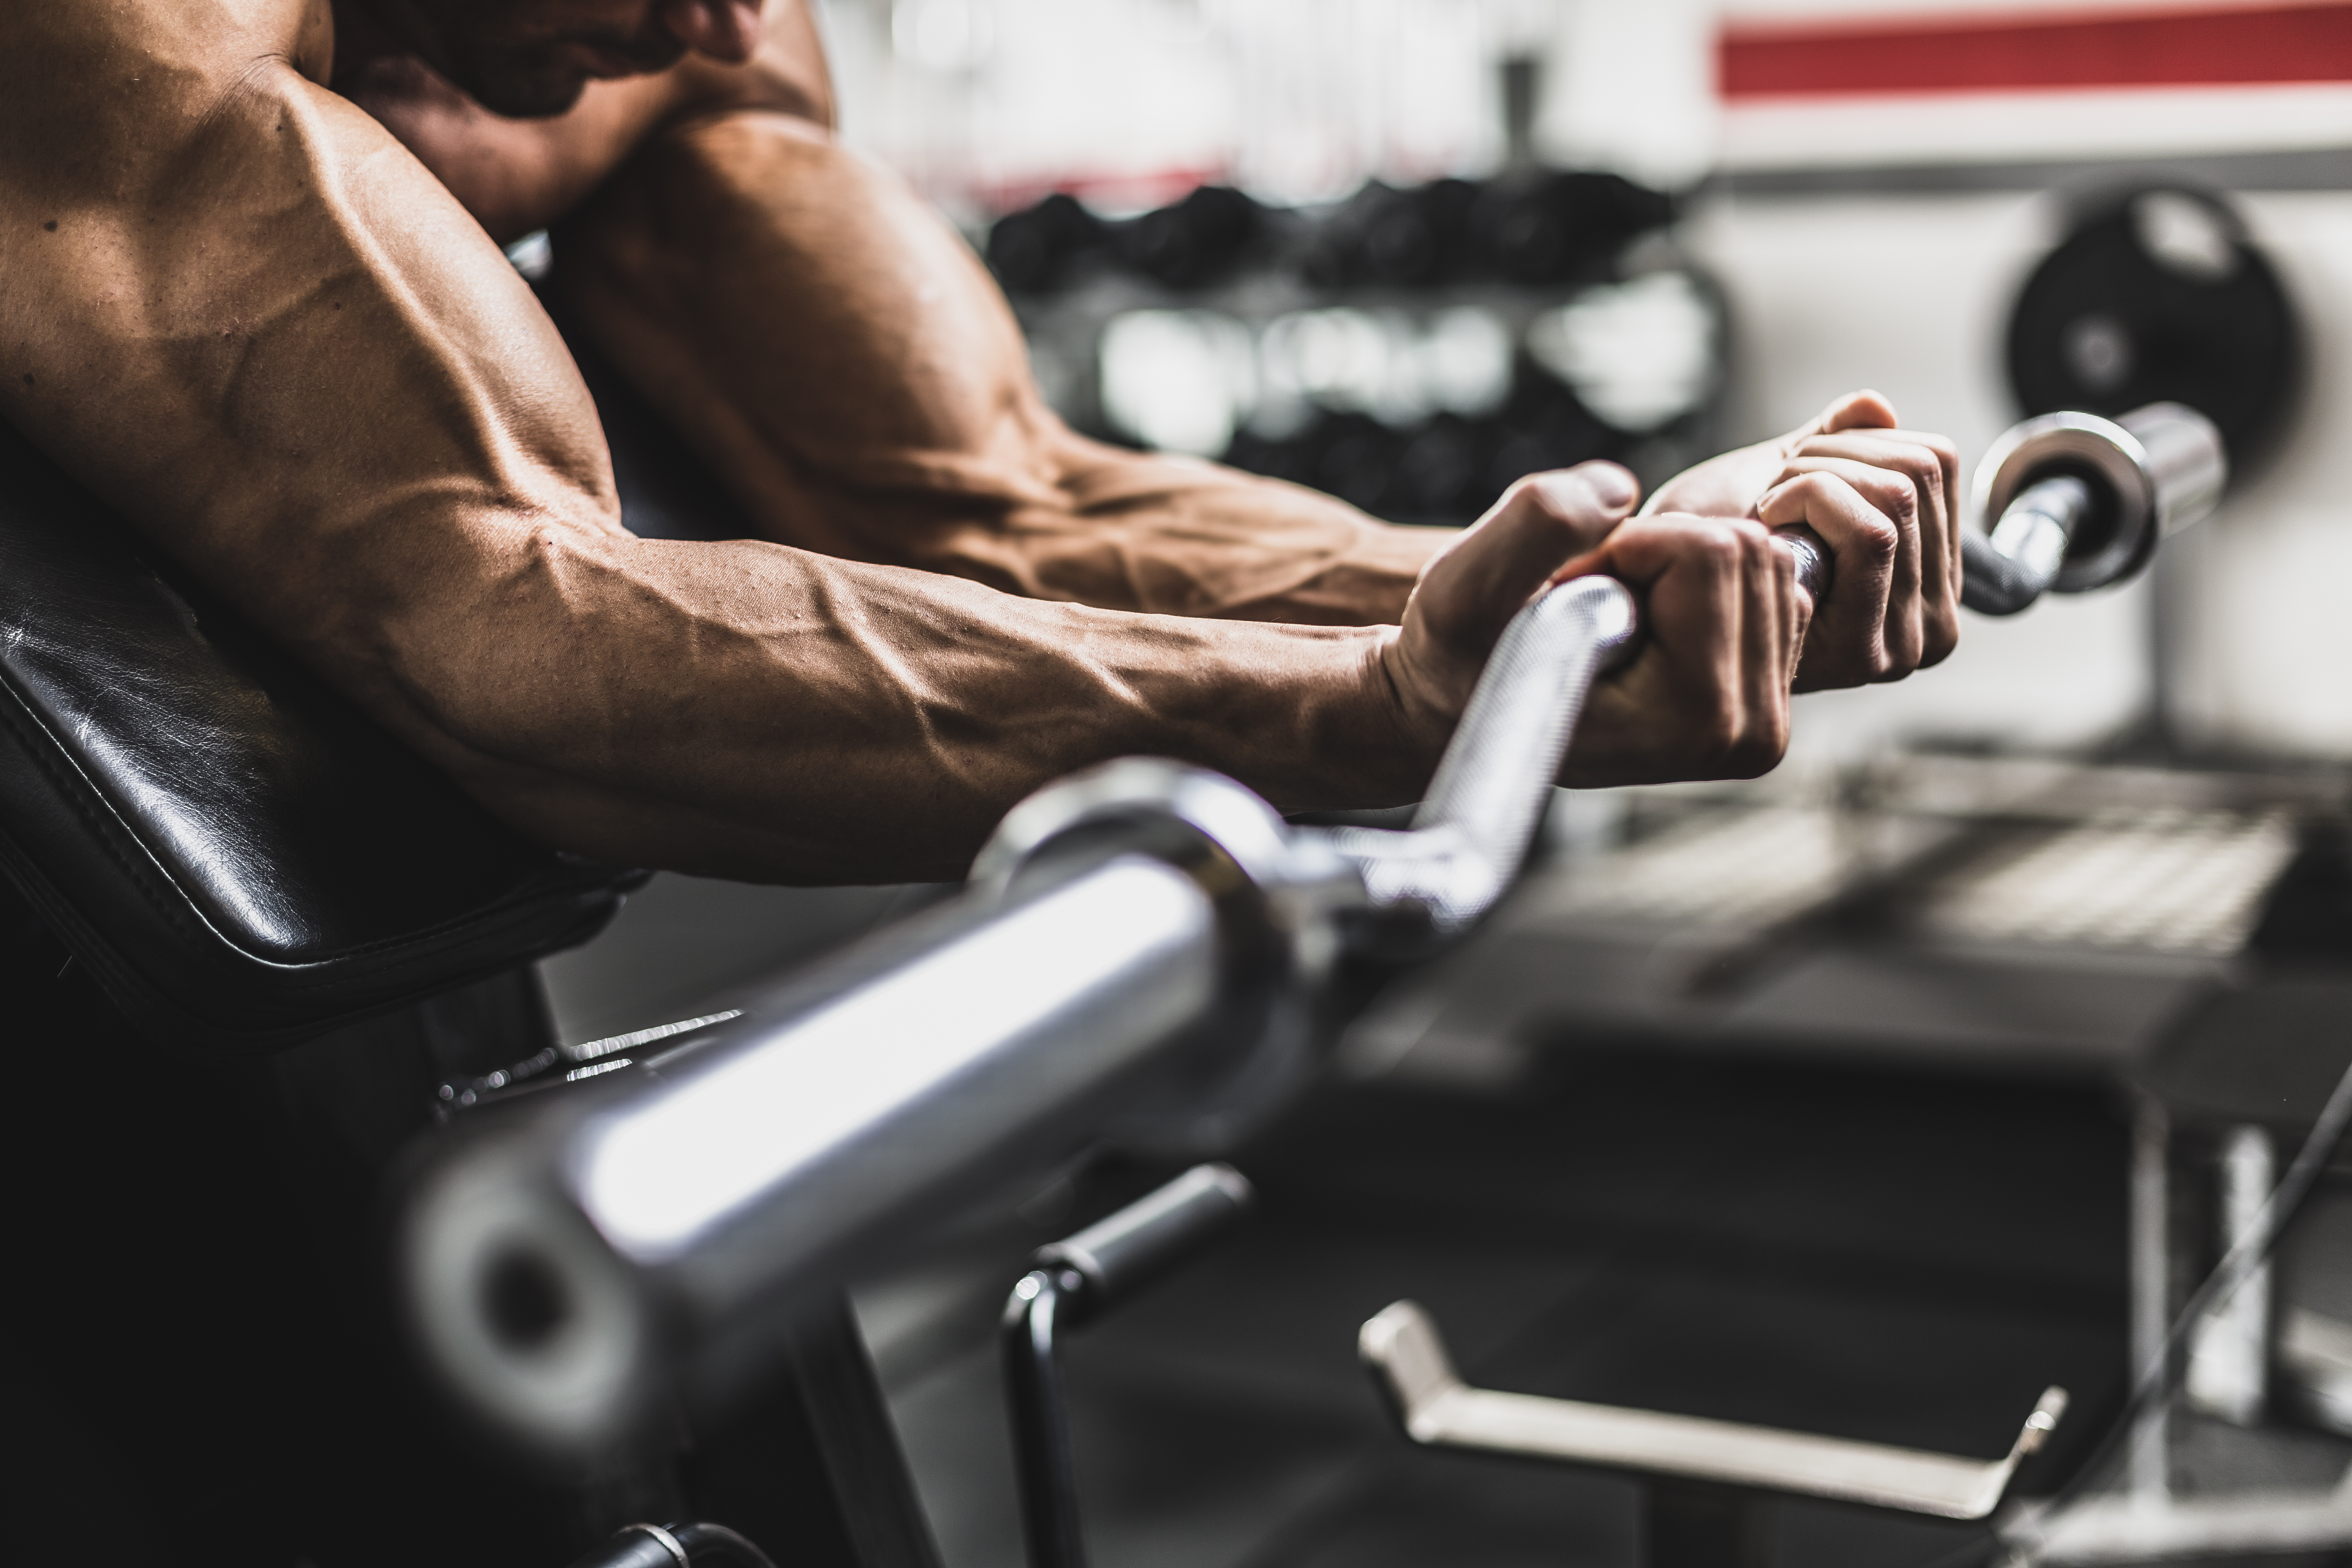 Mass gain: how much muscle can you realistically expect